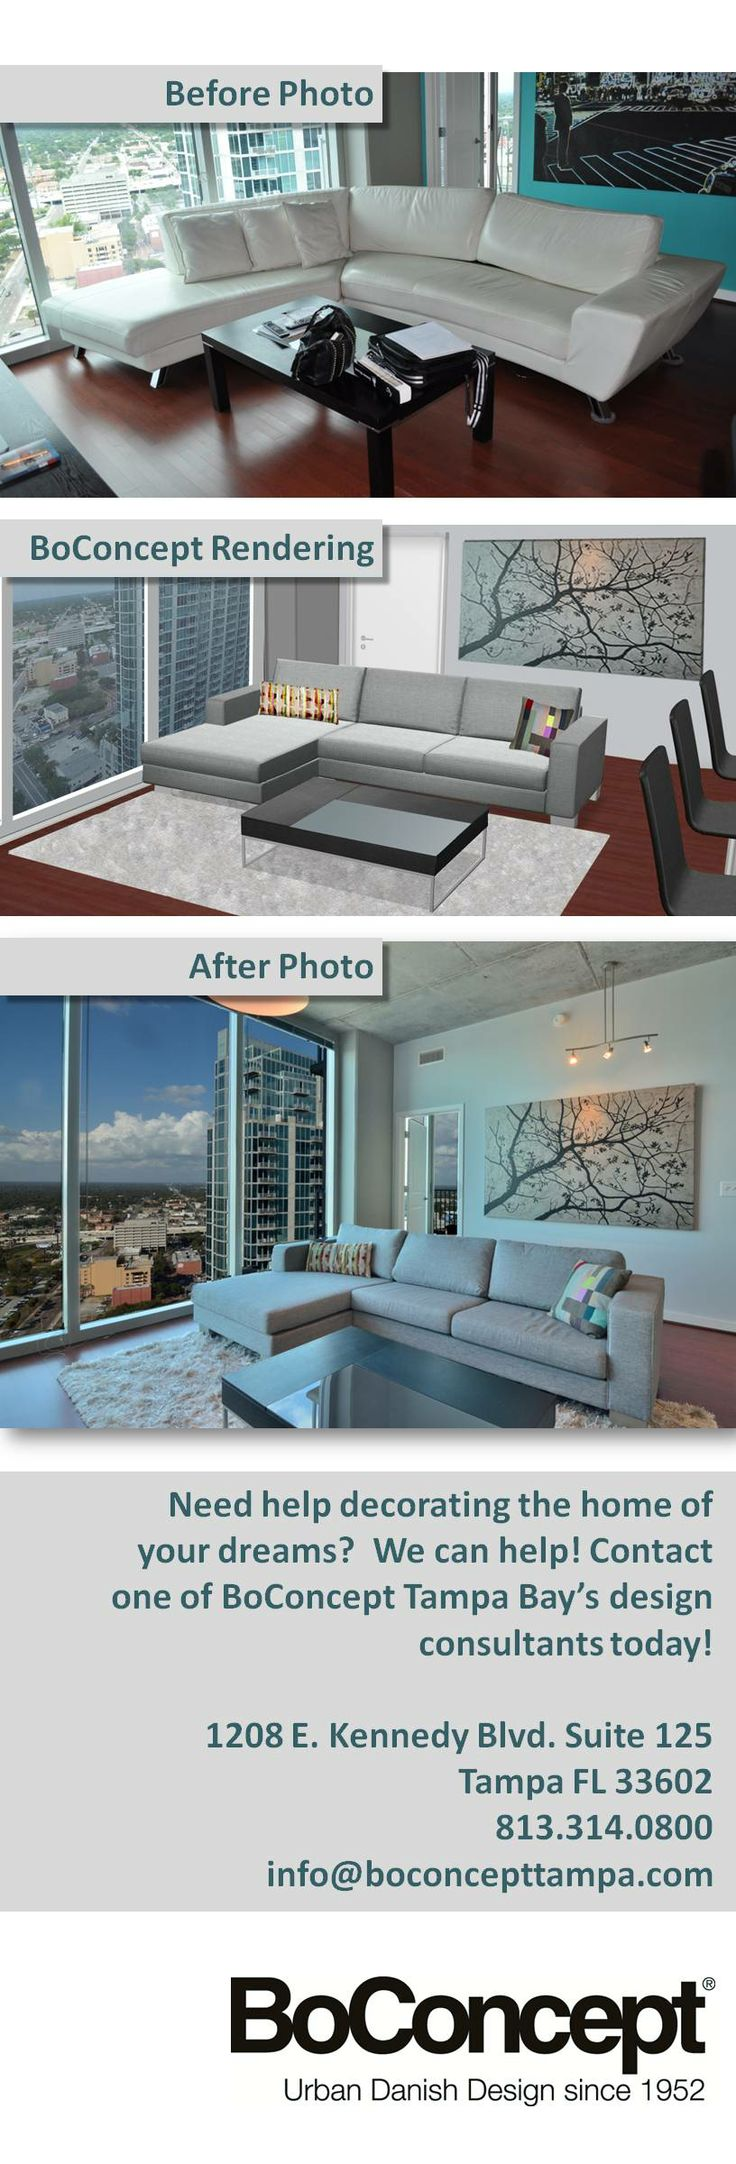 Best Images About Completed In Home Design Consultation - Home design consultation